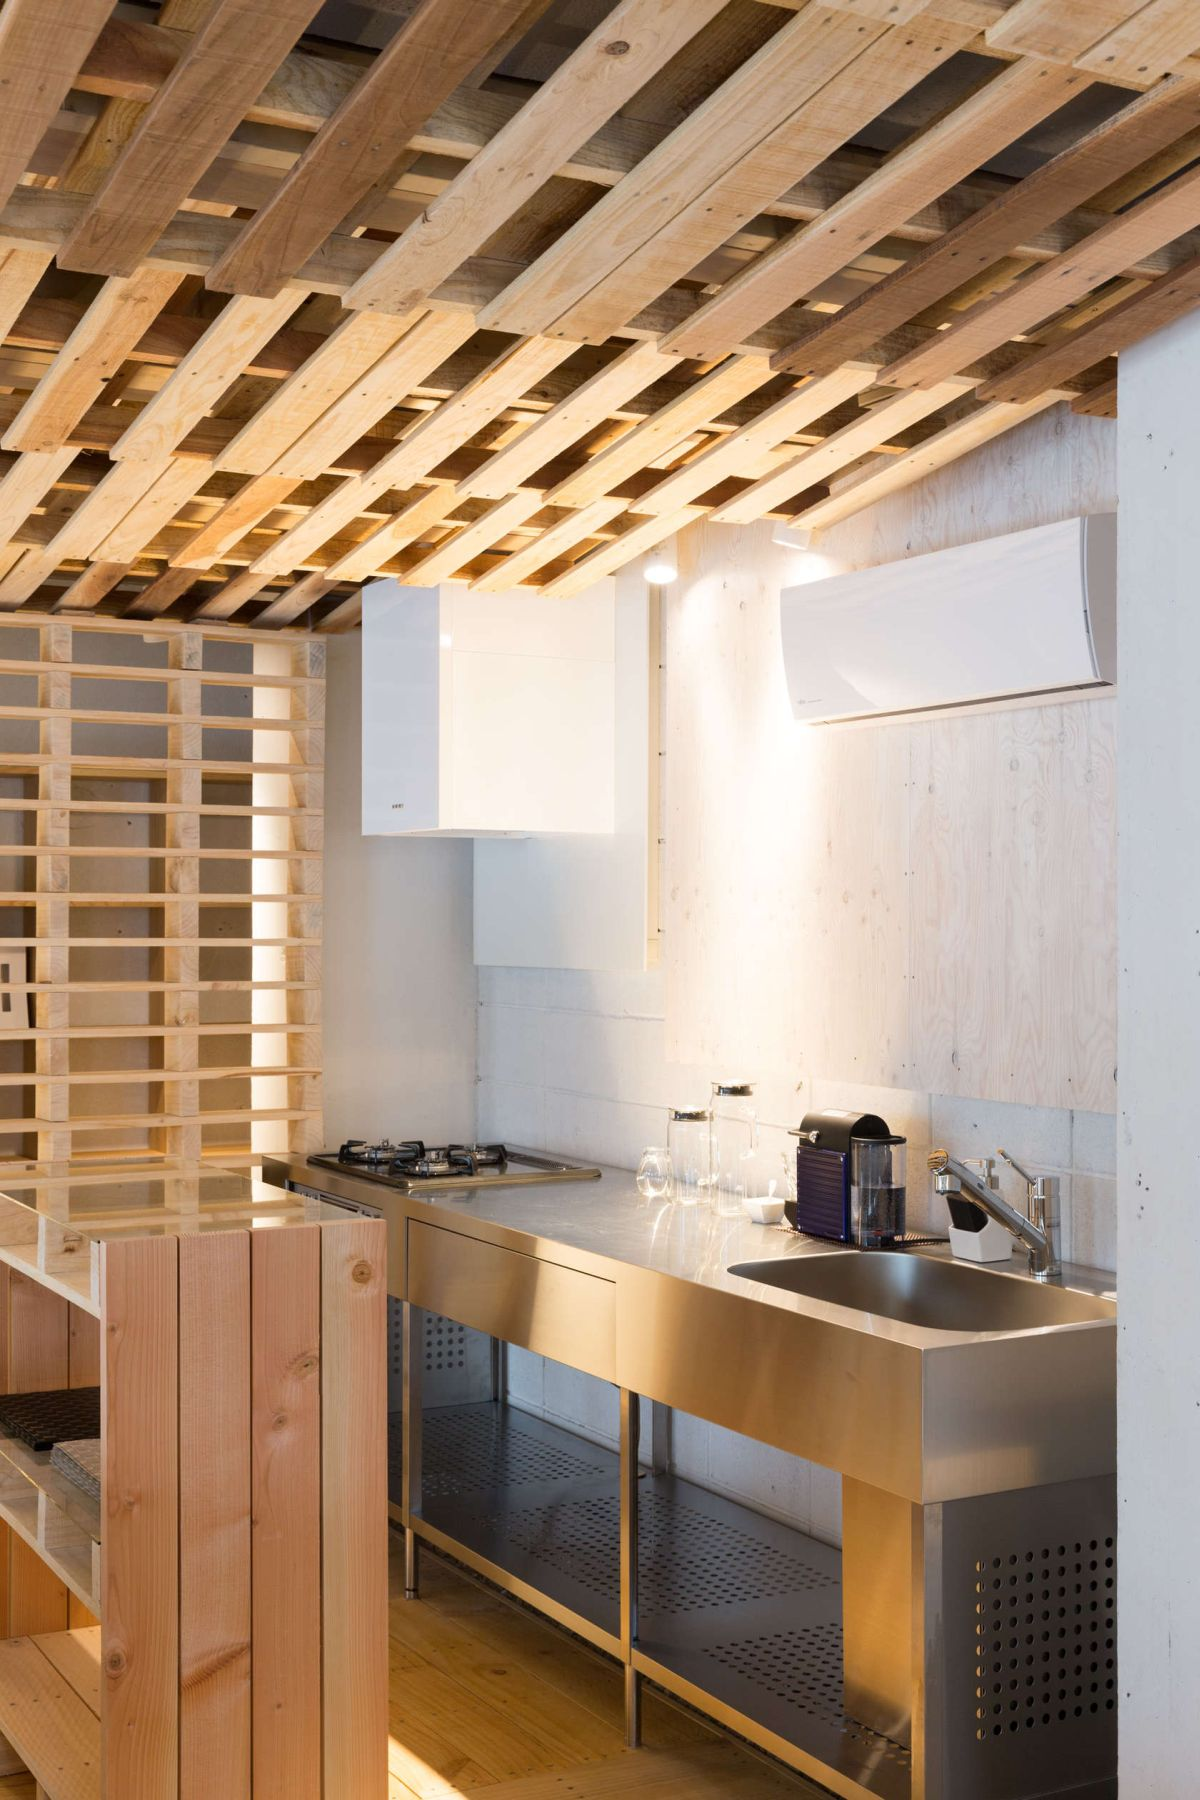 Ingenious LowCost Renovation Of An Office Featuring Pallets